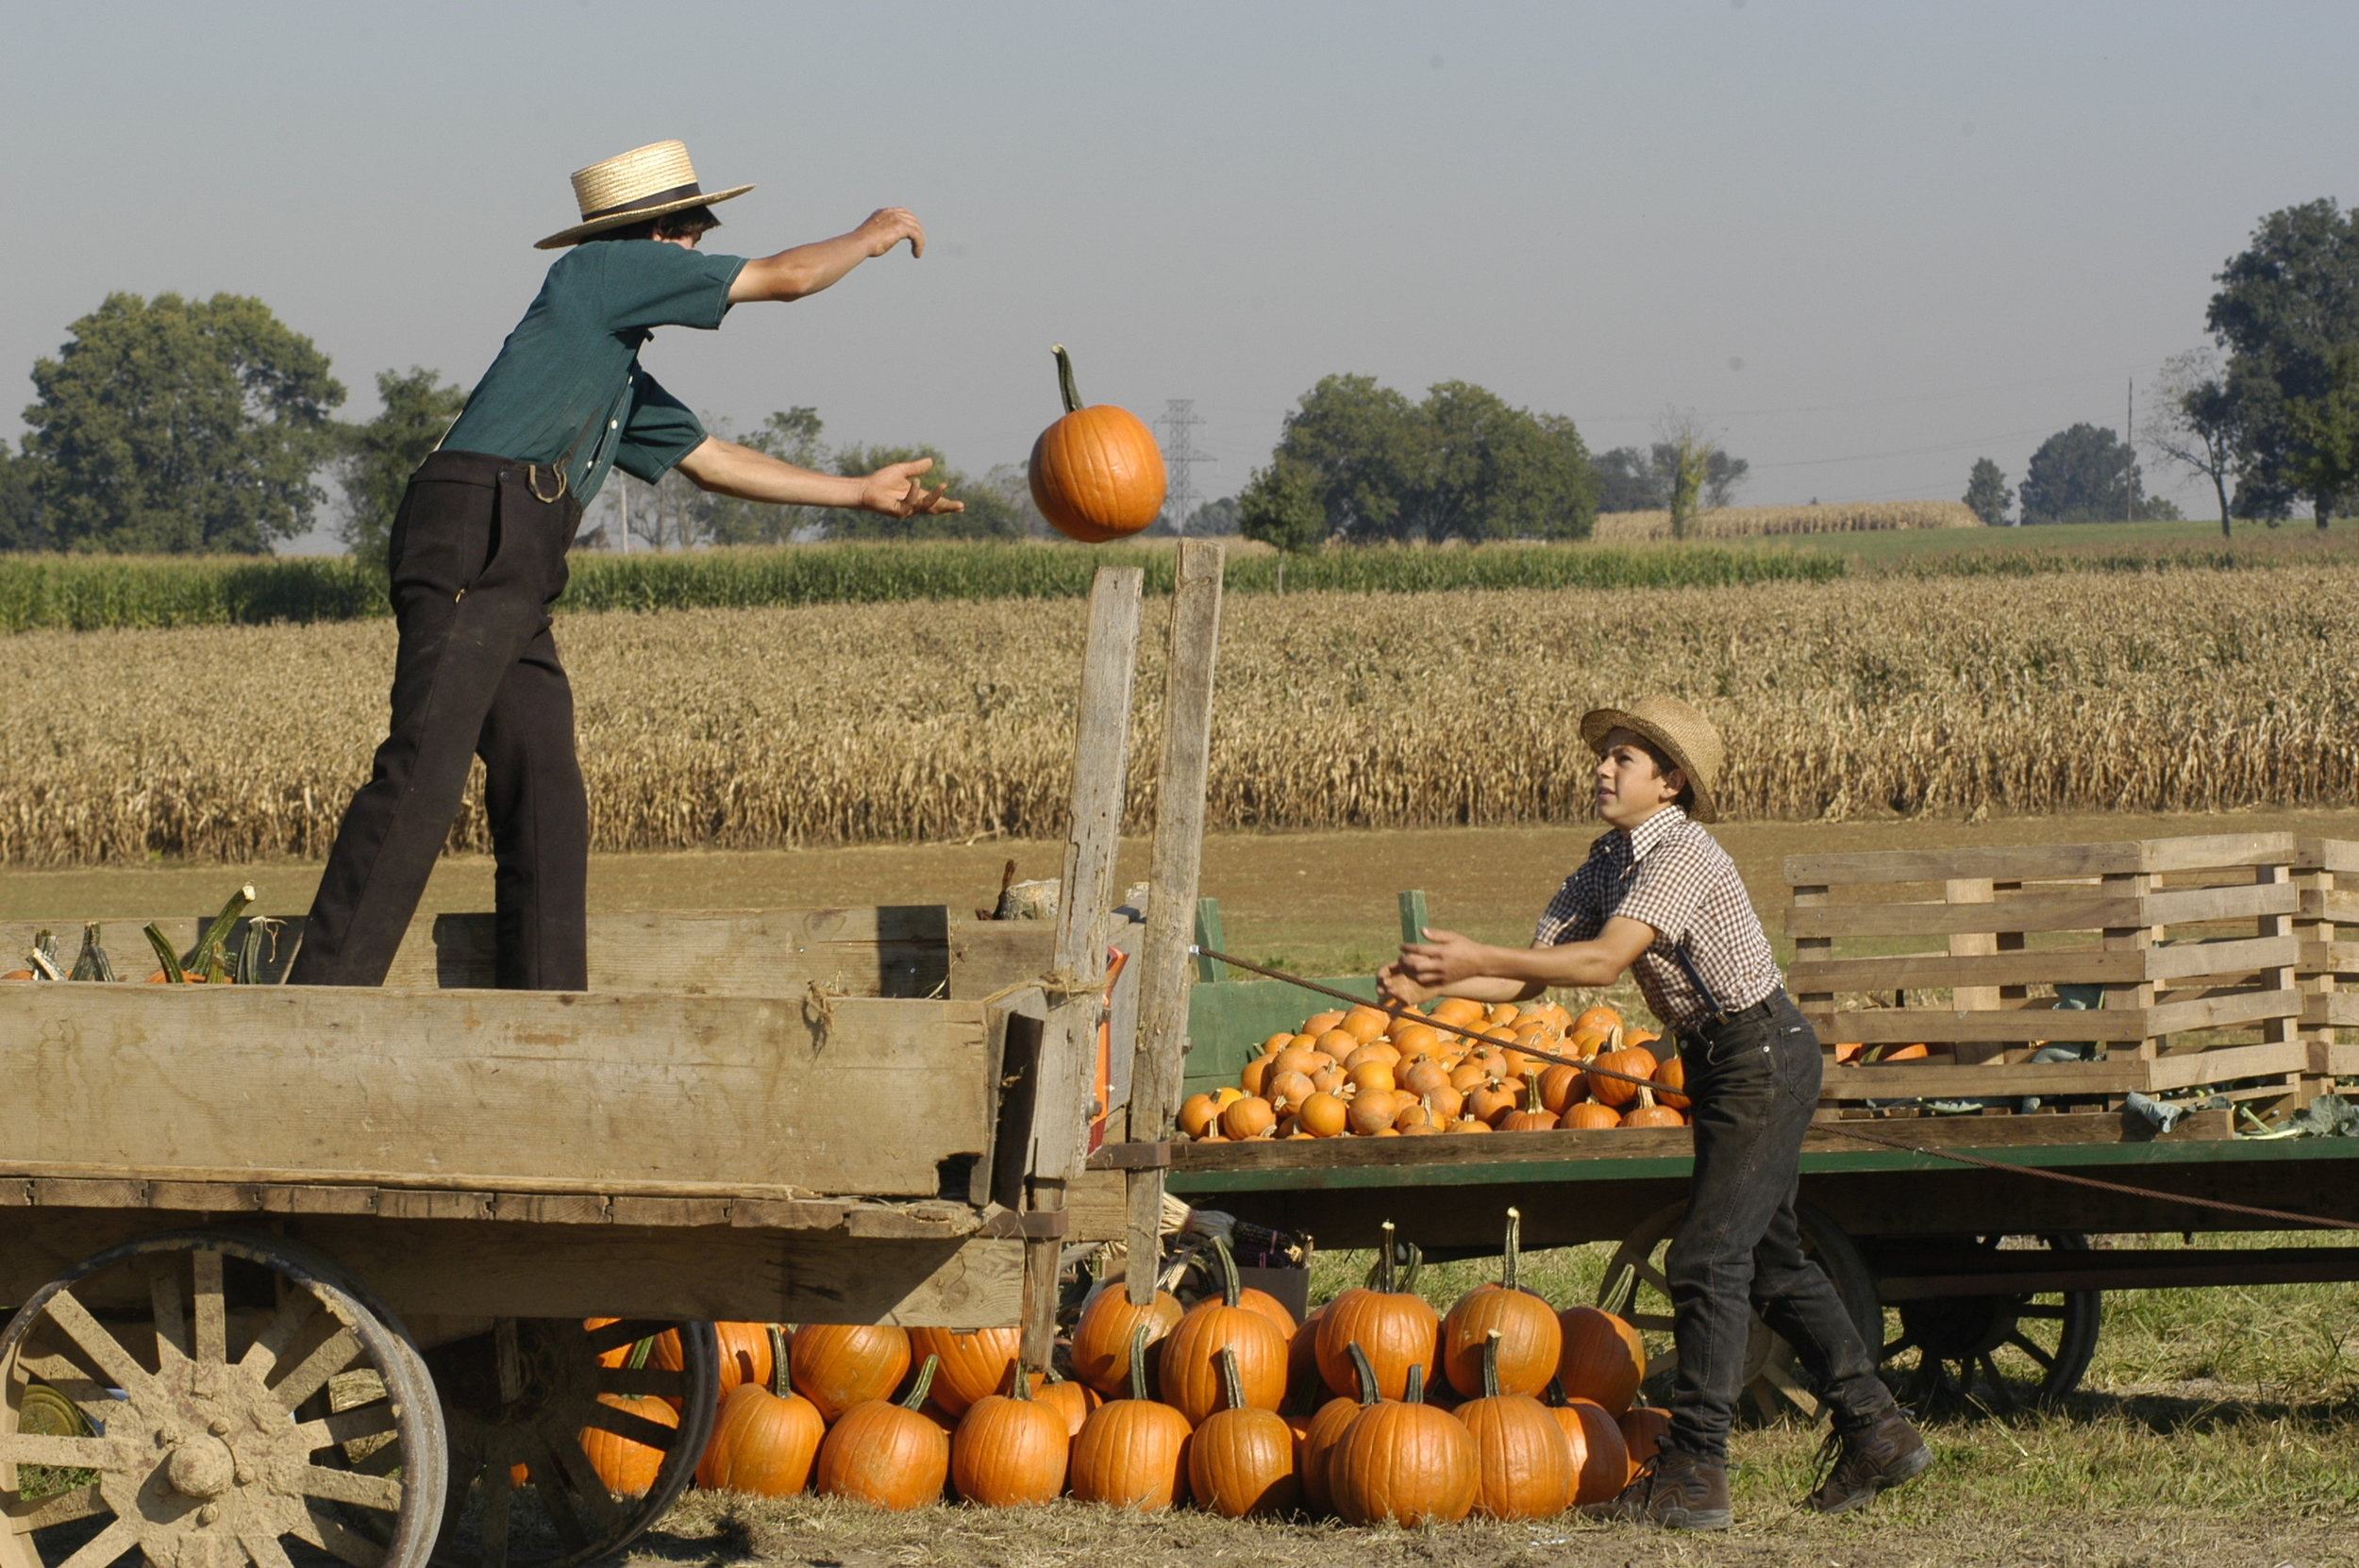 Image by Edwin Remsberg. The image is from Pennsylvania and shows two Amish boys unloading pumpkins from a wagon.